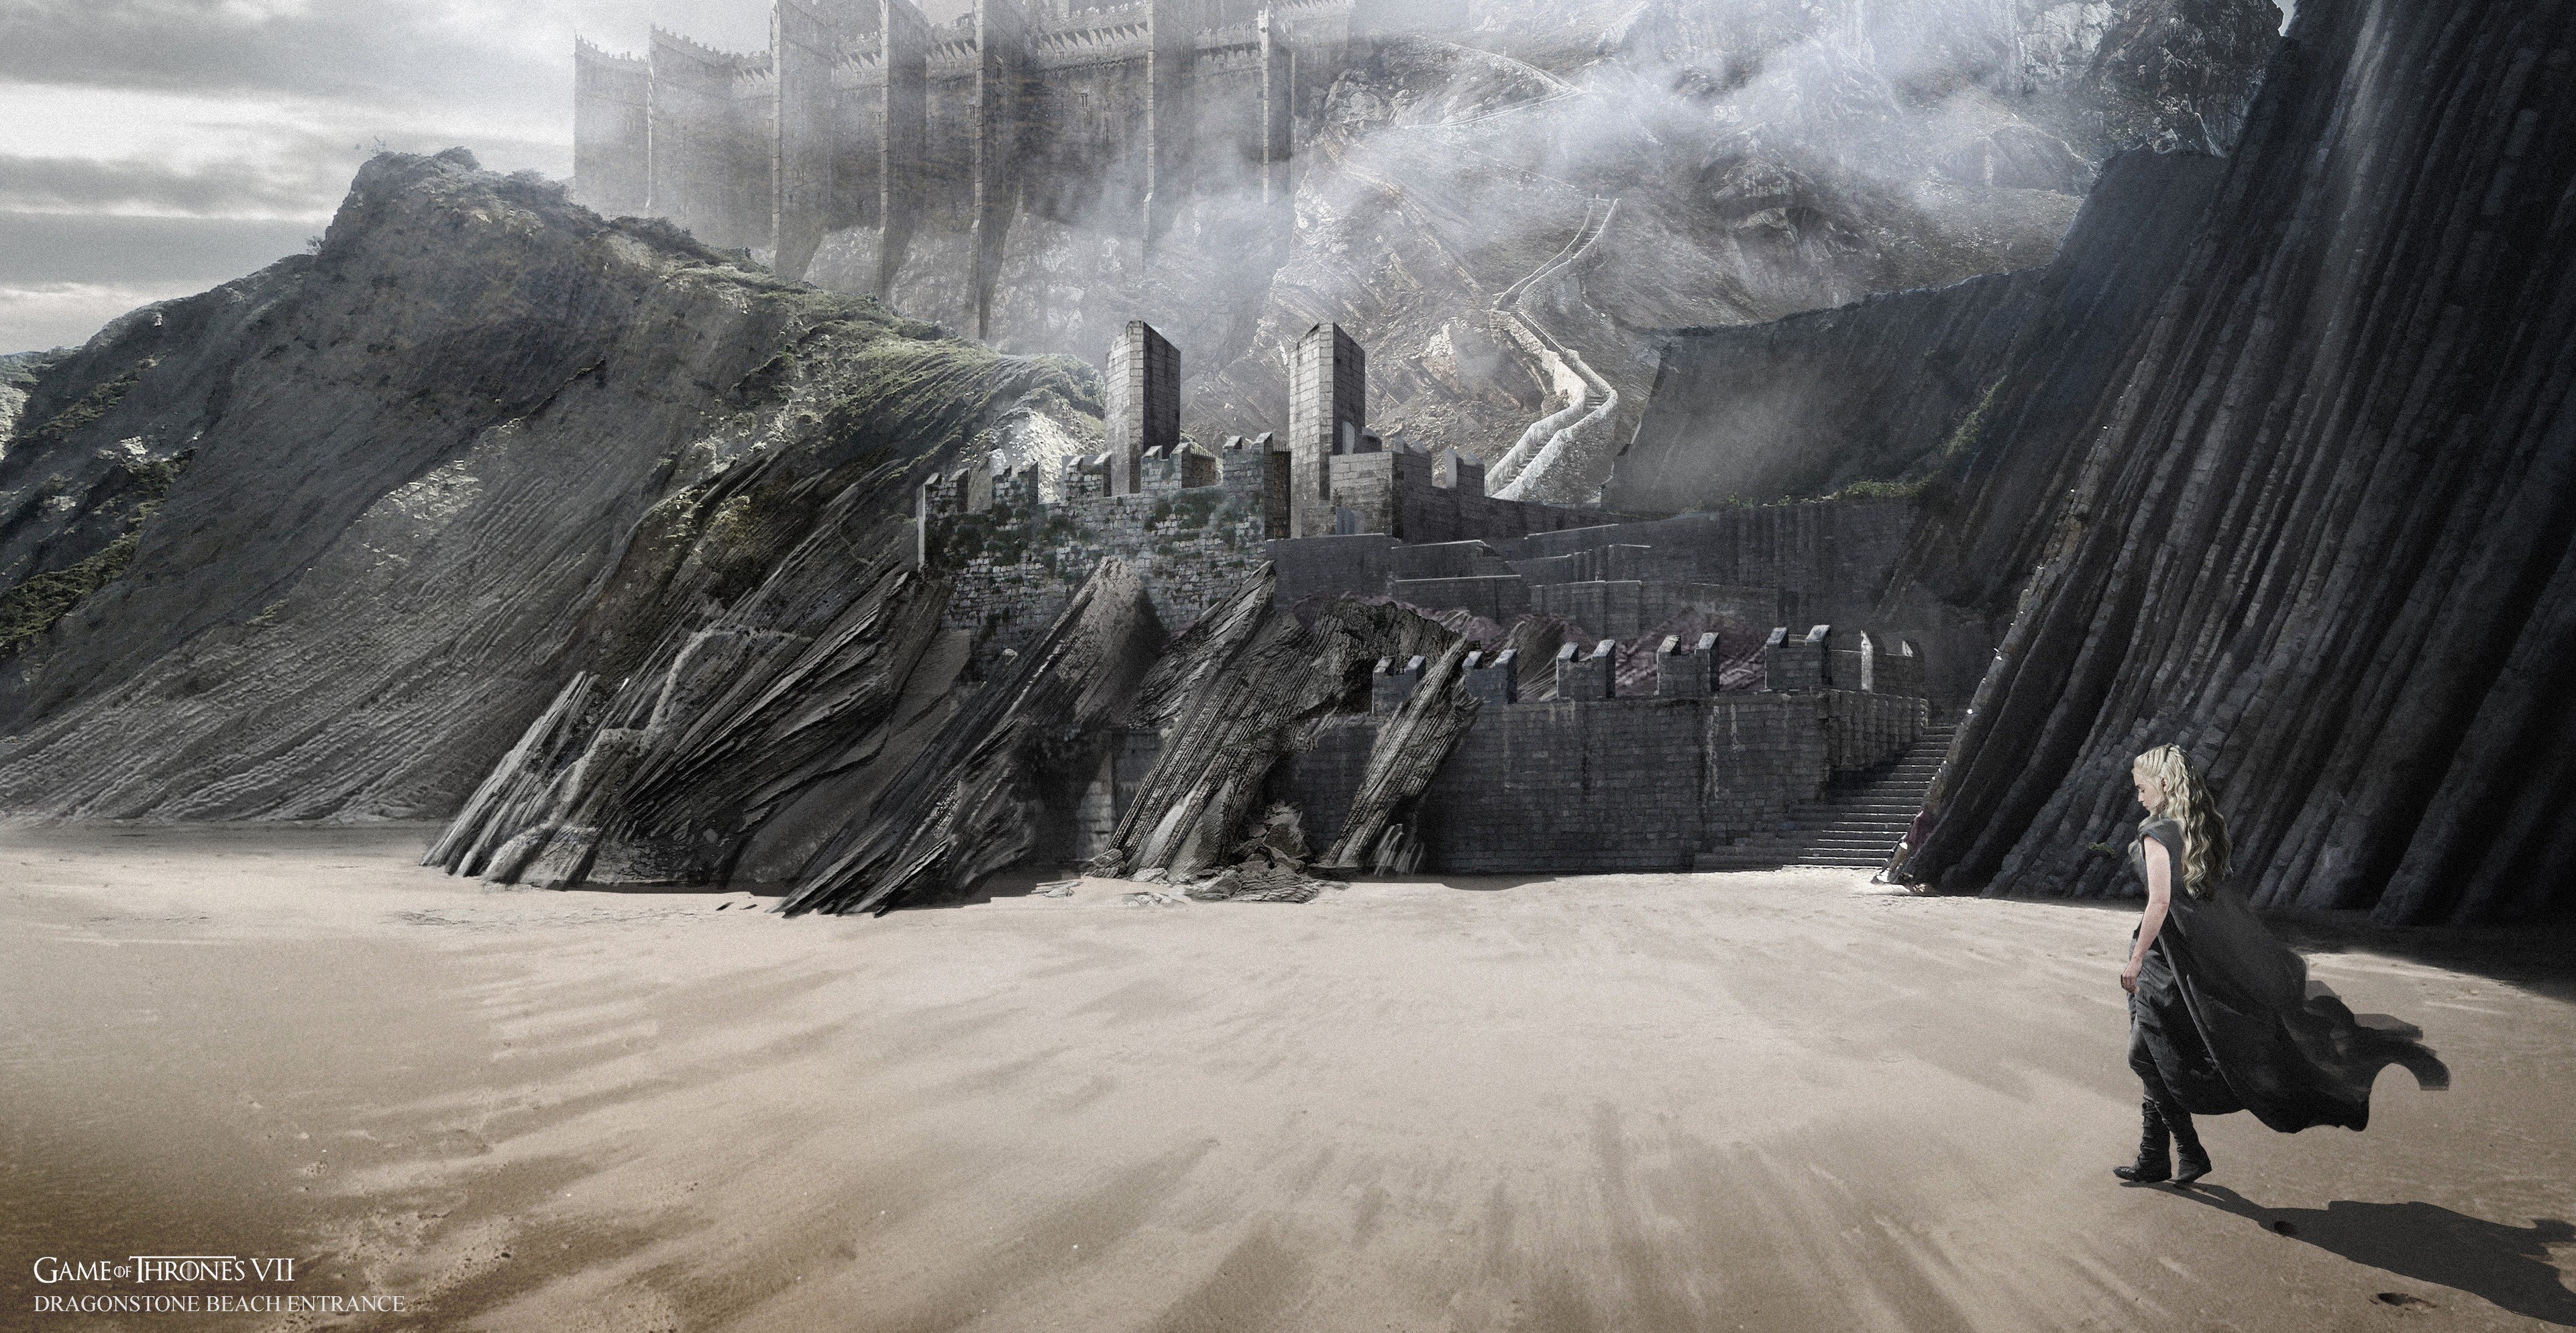 This was a concept to show how the gate would look with steps leading up, based on the Zumaia beach location.